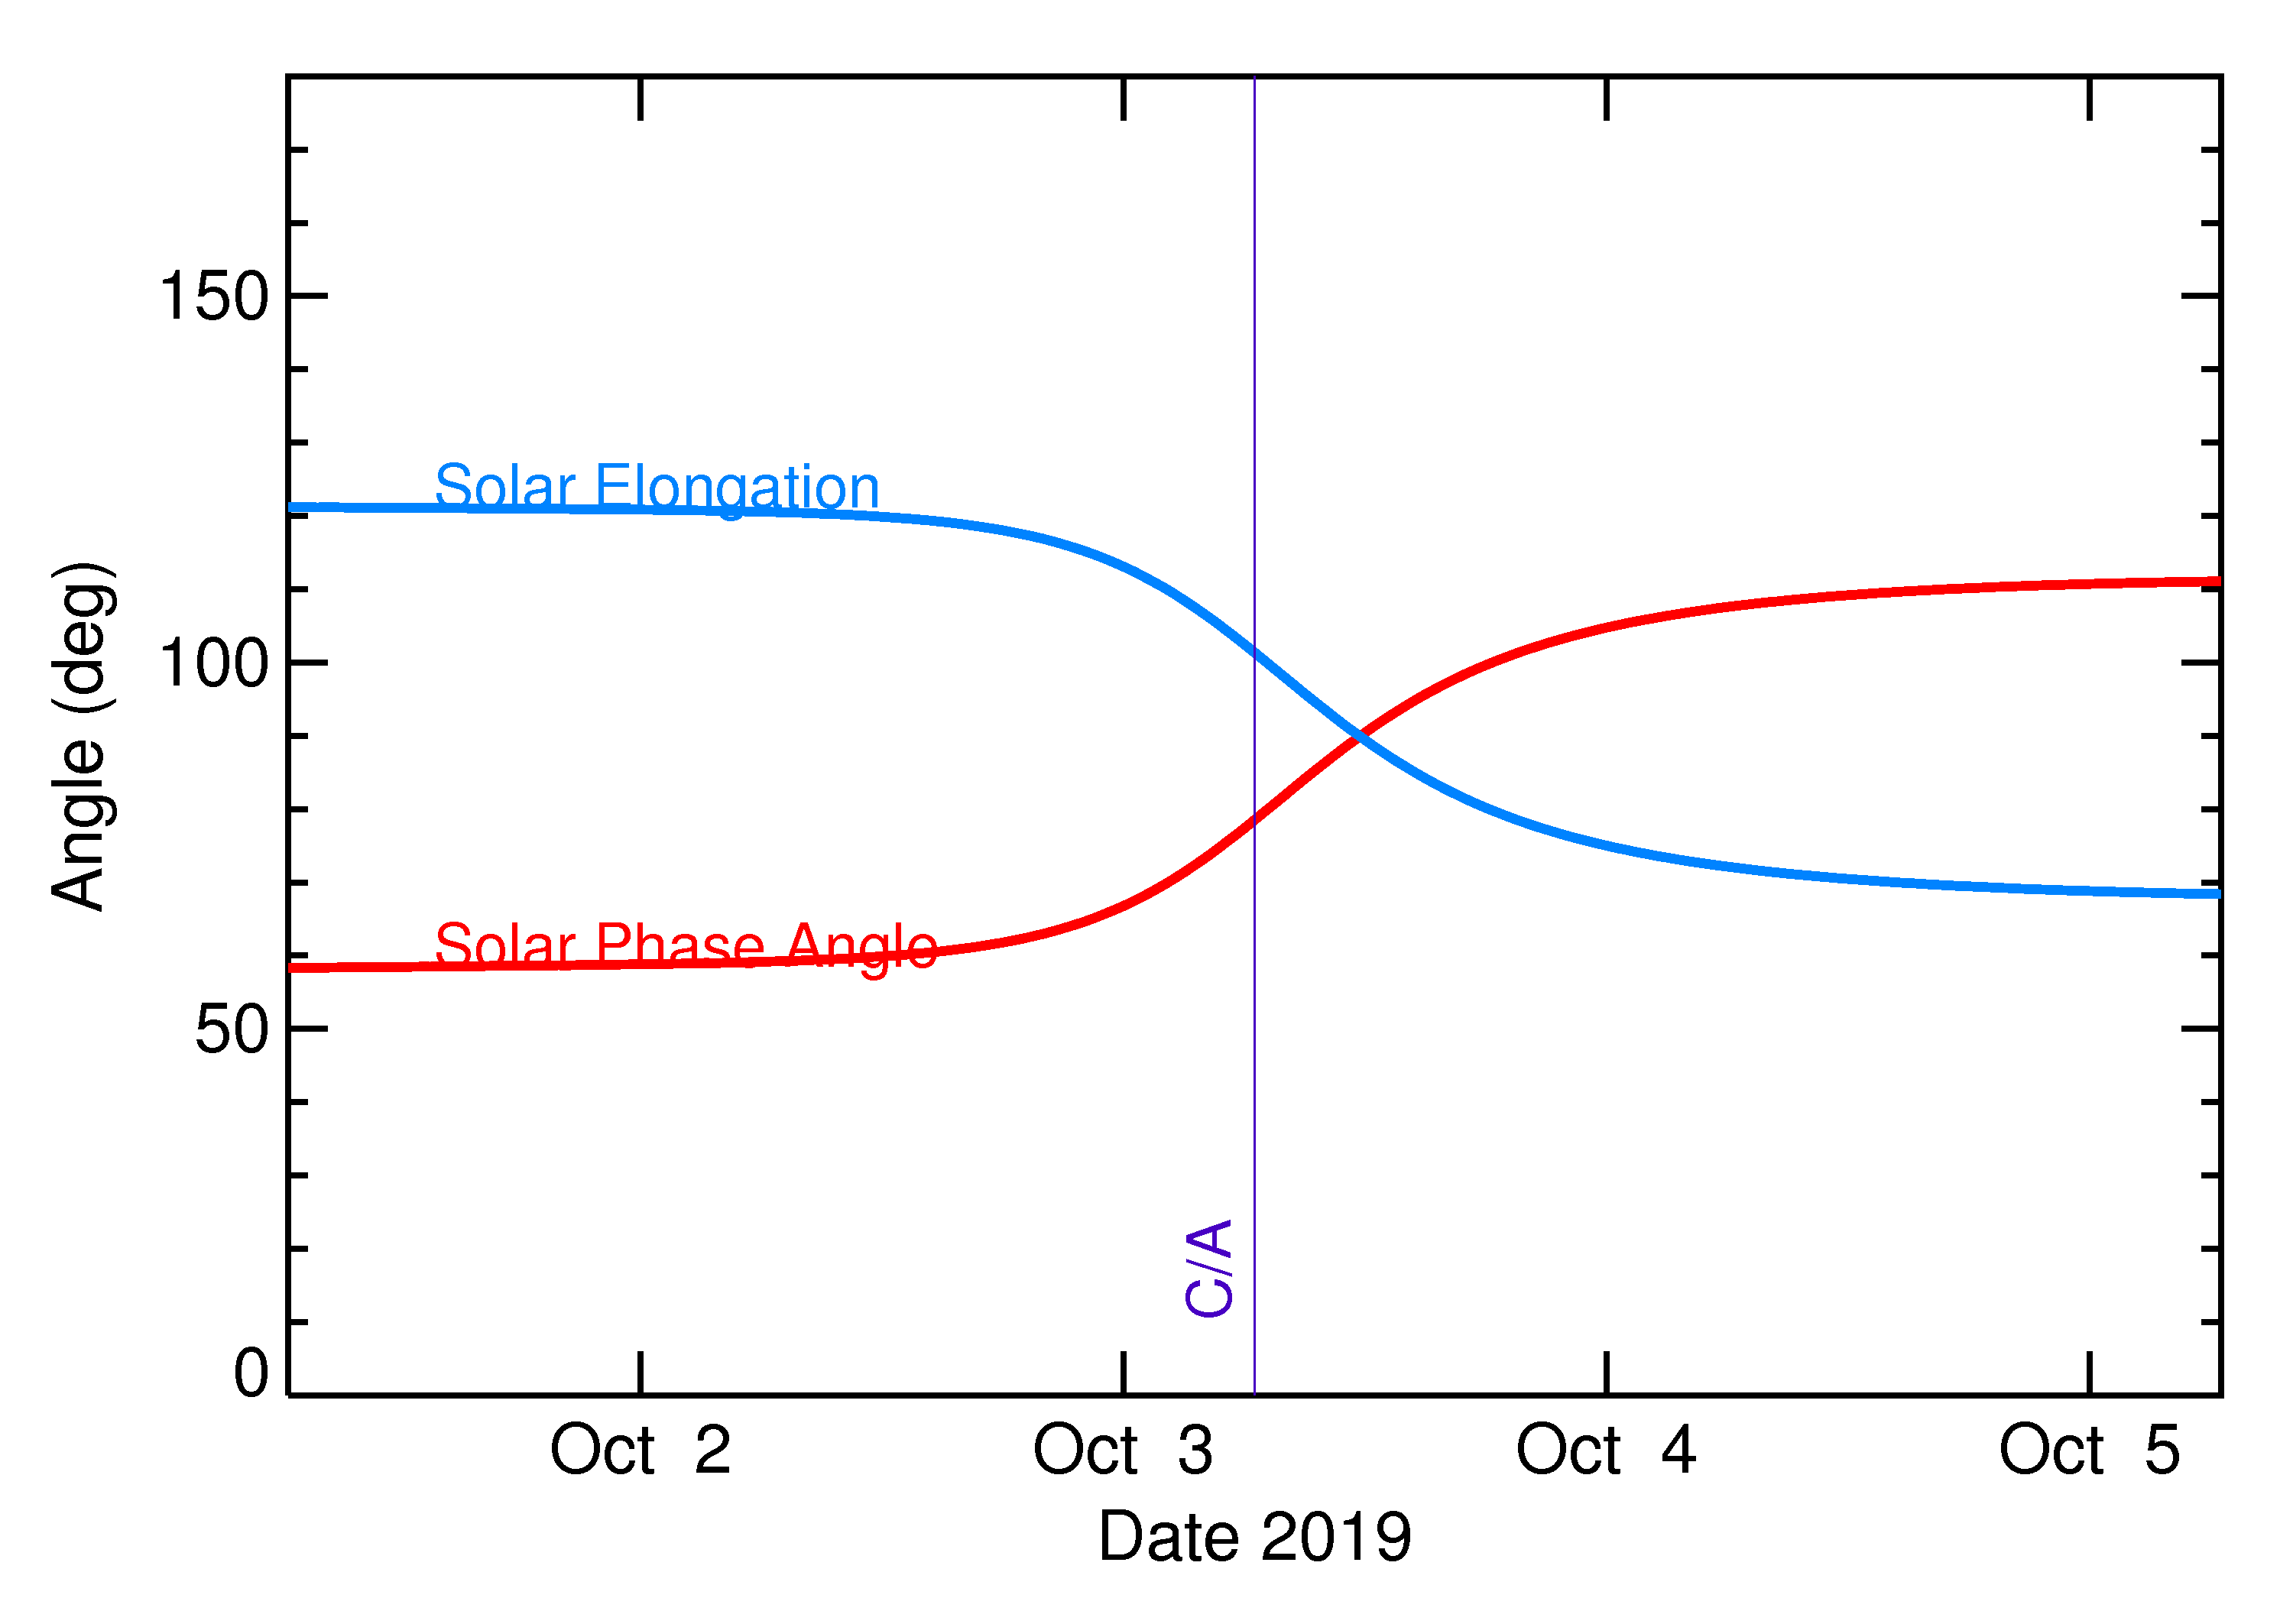 Solar Elongation and Solar Phase Angle of 2019 SP3 in the days around closest approach